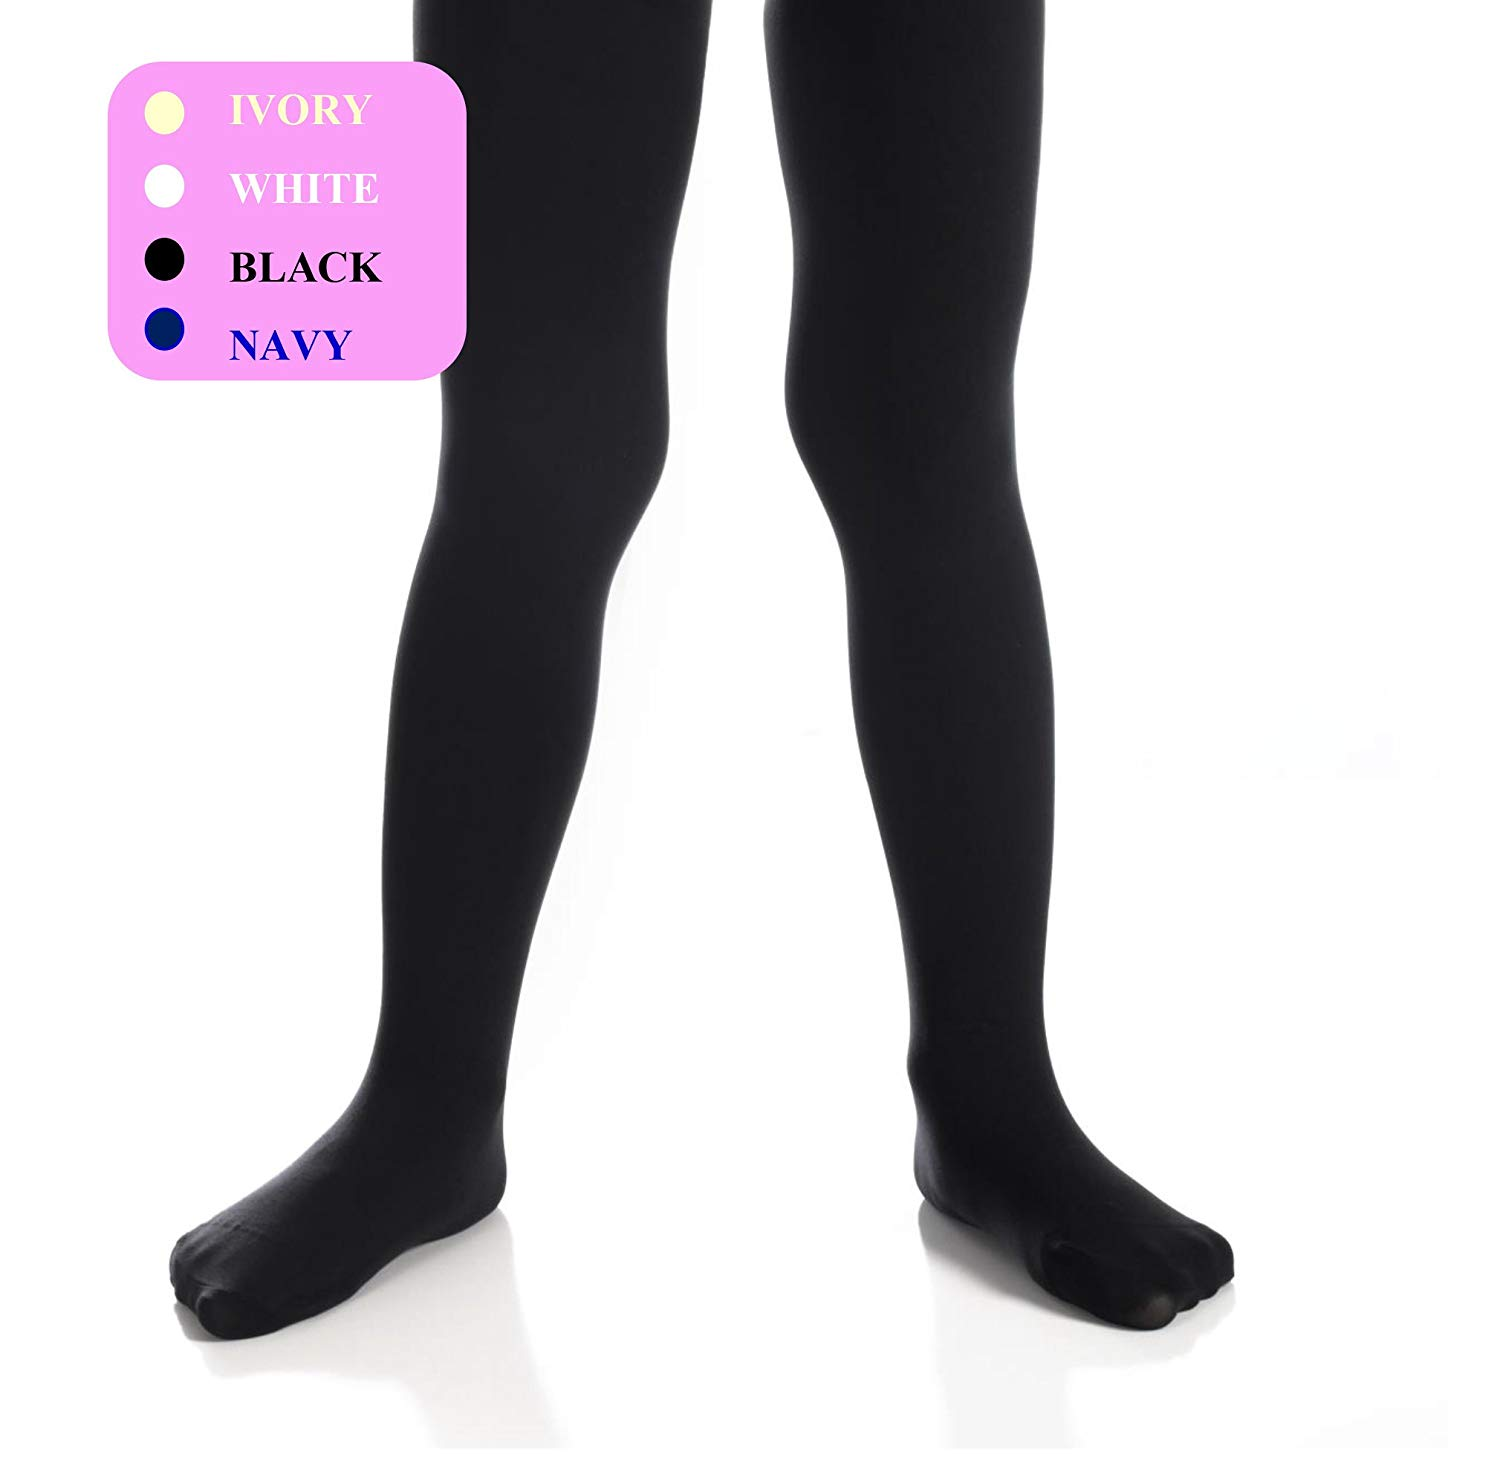 9c63339ba38 Get Quotations · Girls Tights - Kids Opaque Tights - Microfiber Tights -  Black